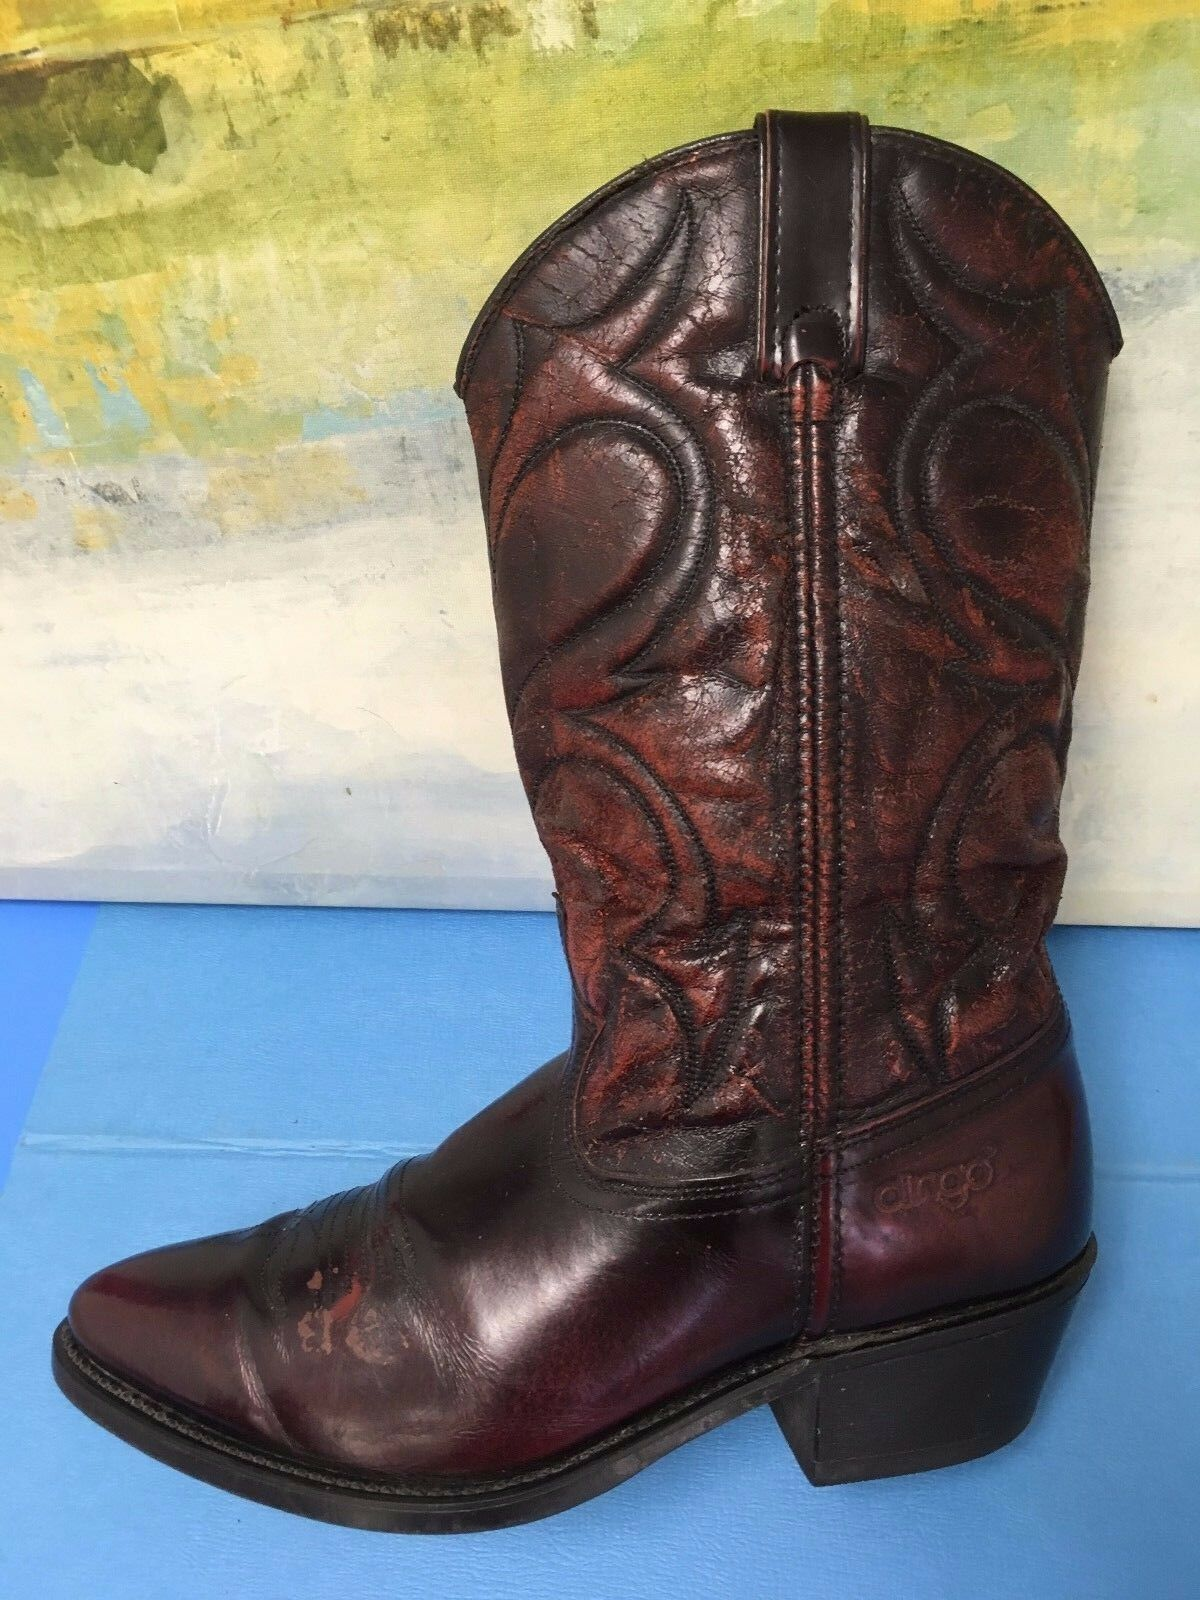 DINGO Style 5959 Burgundy Cowboy Western Boots Size 8.5 EW Pull On